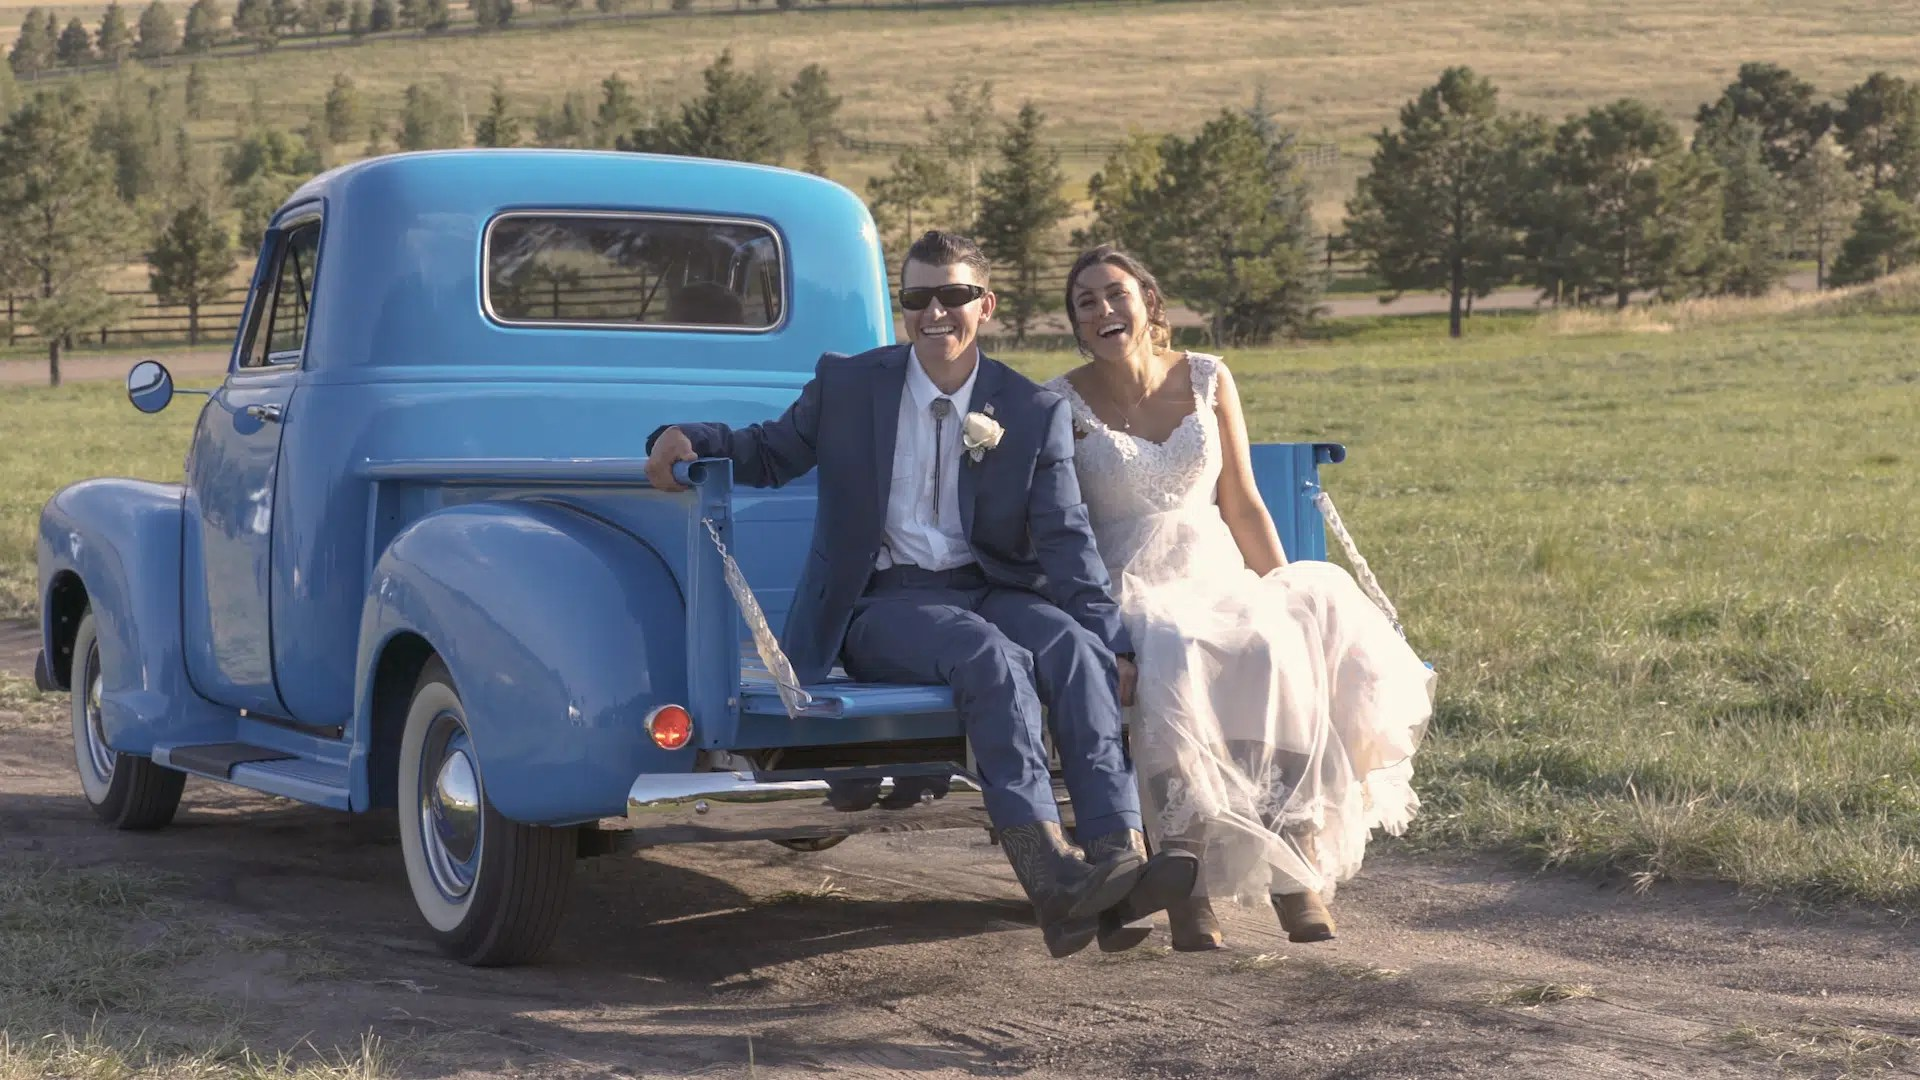 Kari & Kristofer | Wedding Highlights Video  | Spruce Mountain Ranch, Larkspur, CO